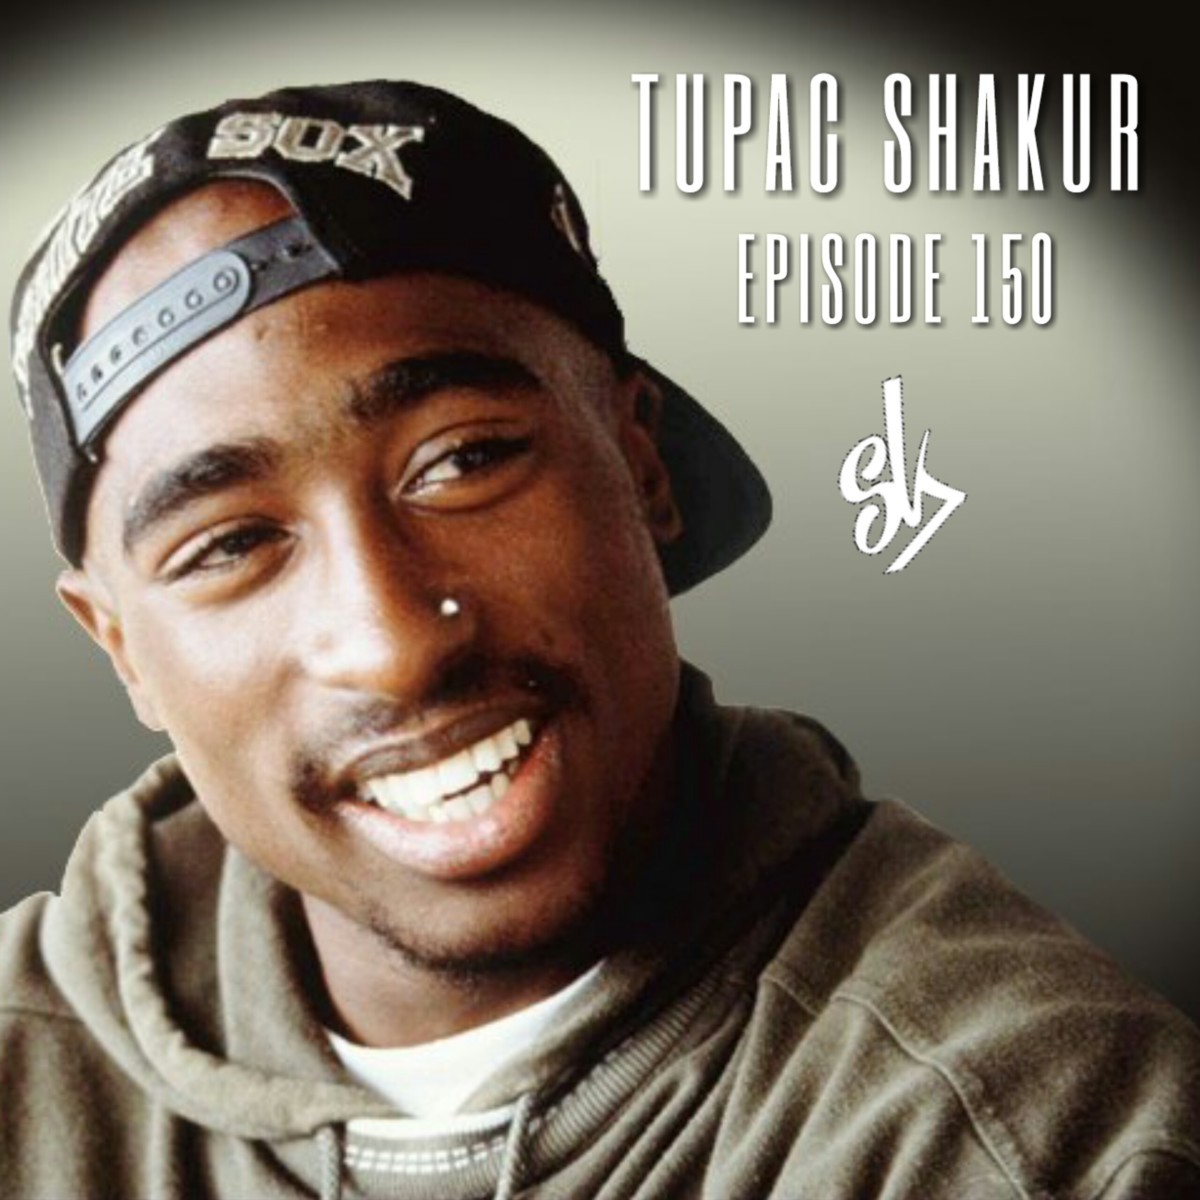 sofa king podcast 3pc new modern gray microfiber sectional s168rg episode 150 tupac shakur the curse of island